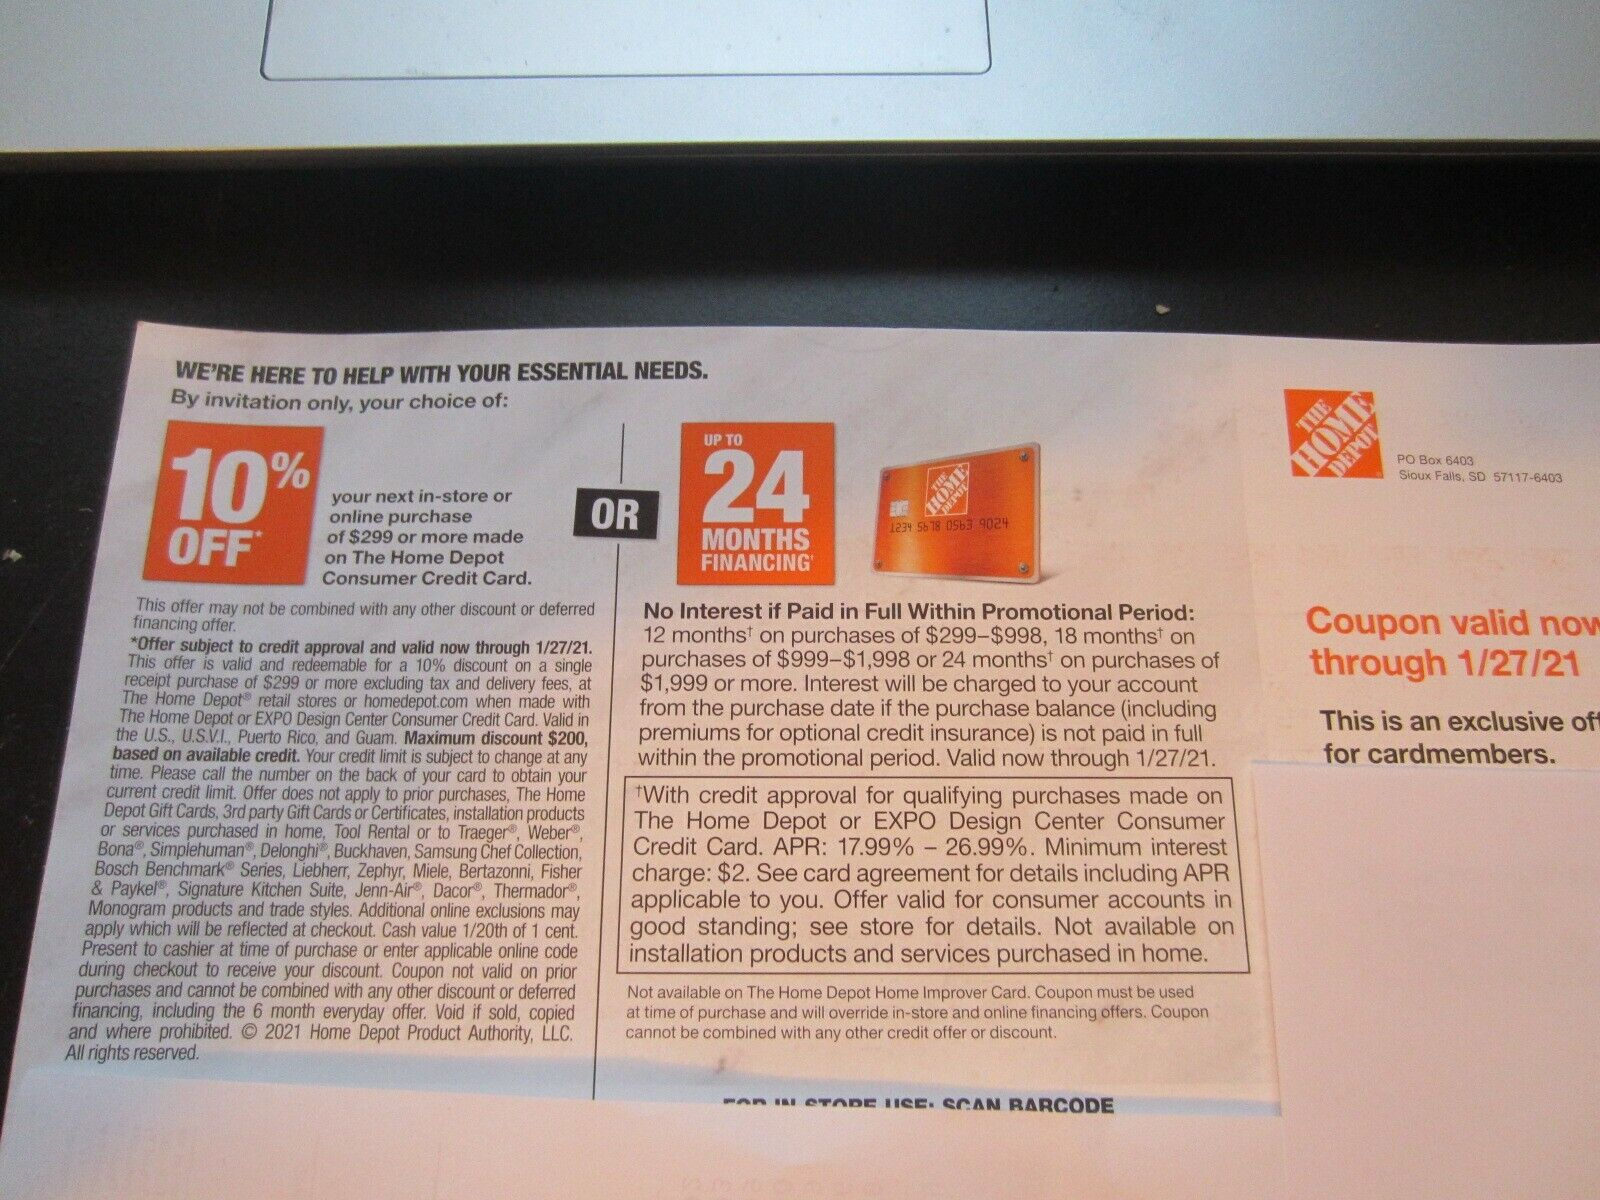 Home Depot 10 Off In-store/online Or 24 Months Financing EXP 1/27/21 Coupons - $16.00